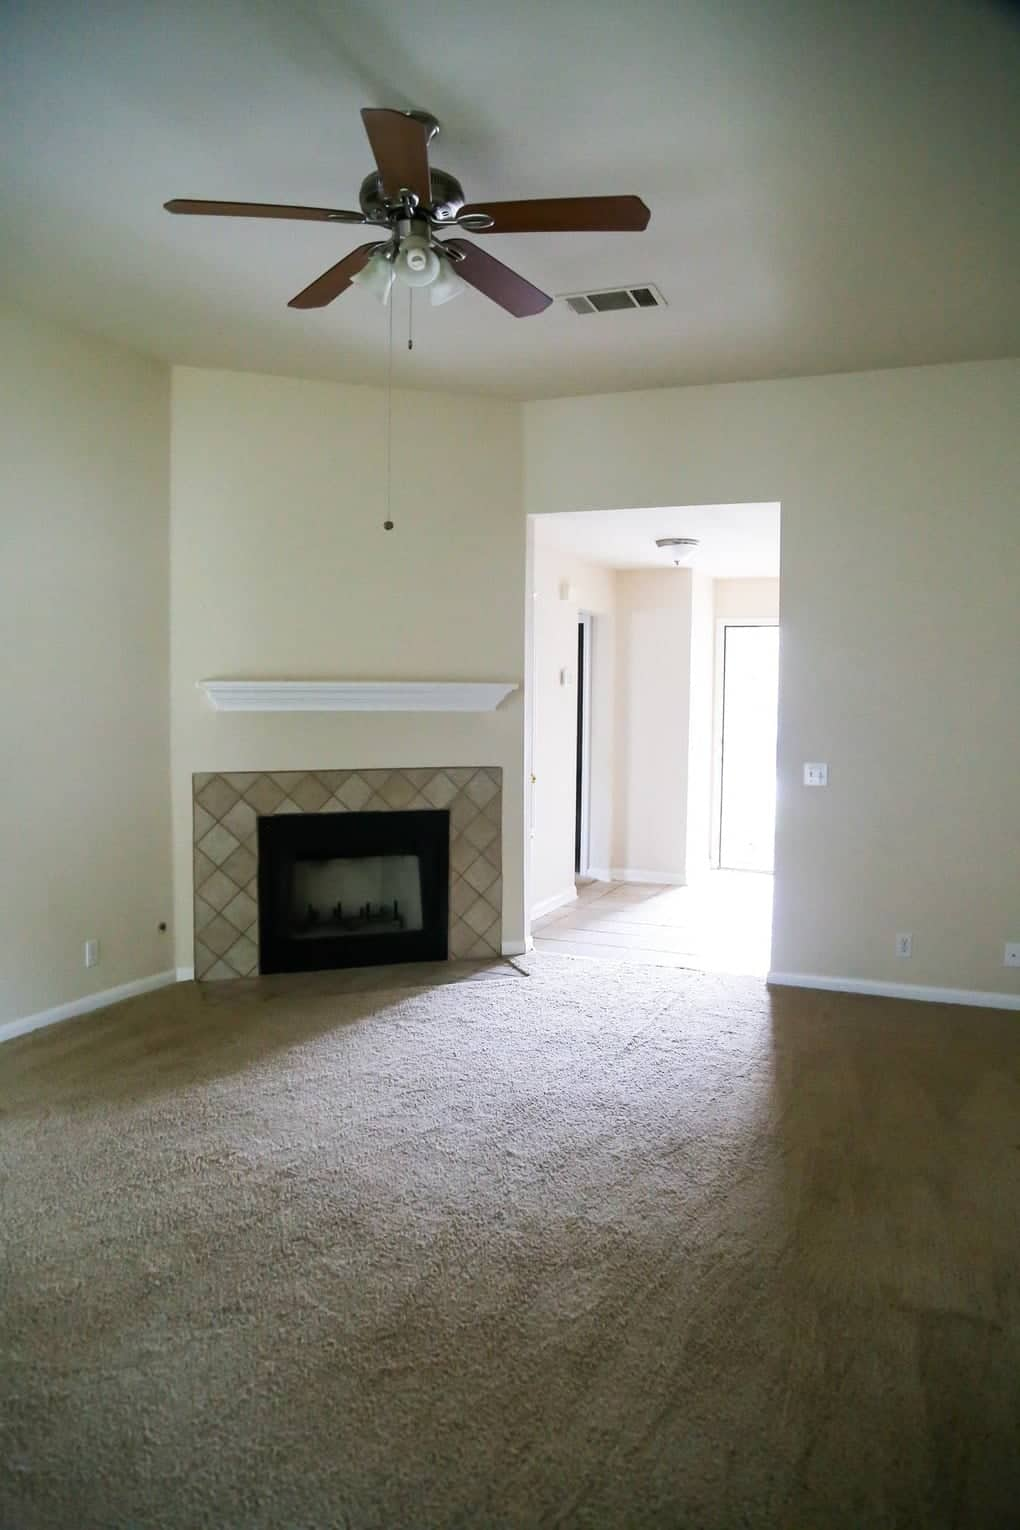 Old and dark living room with outdated tan walls, tan carpet and no furniture